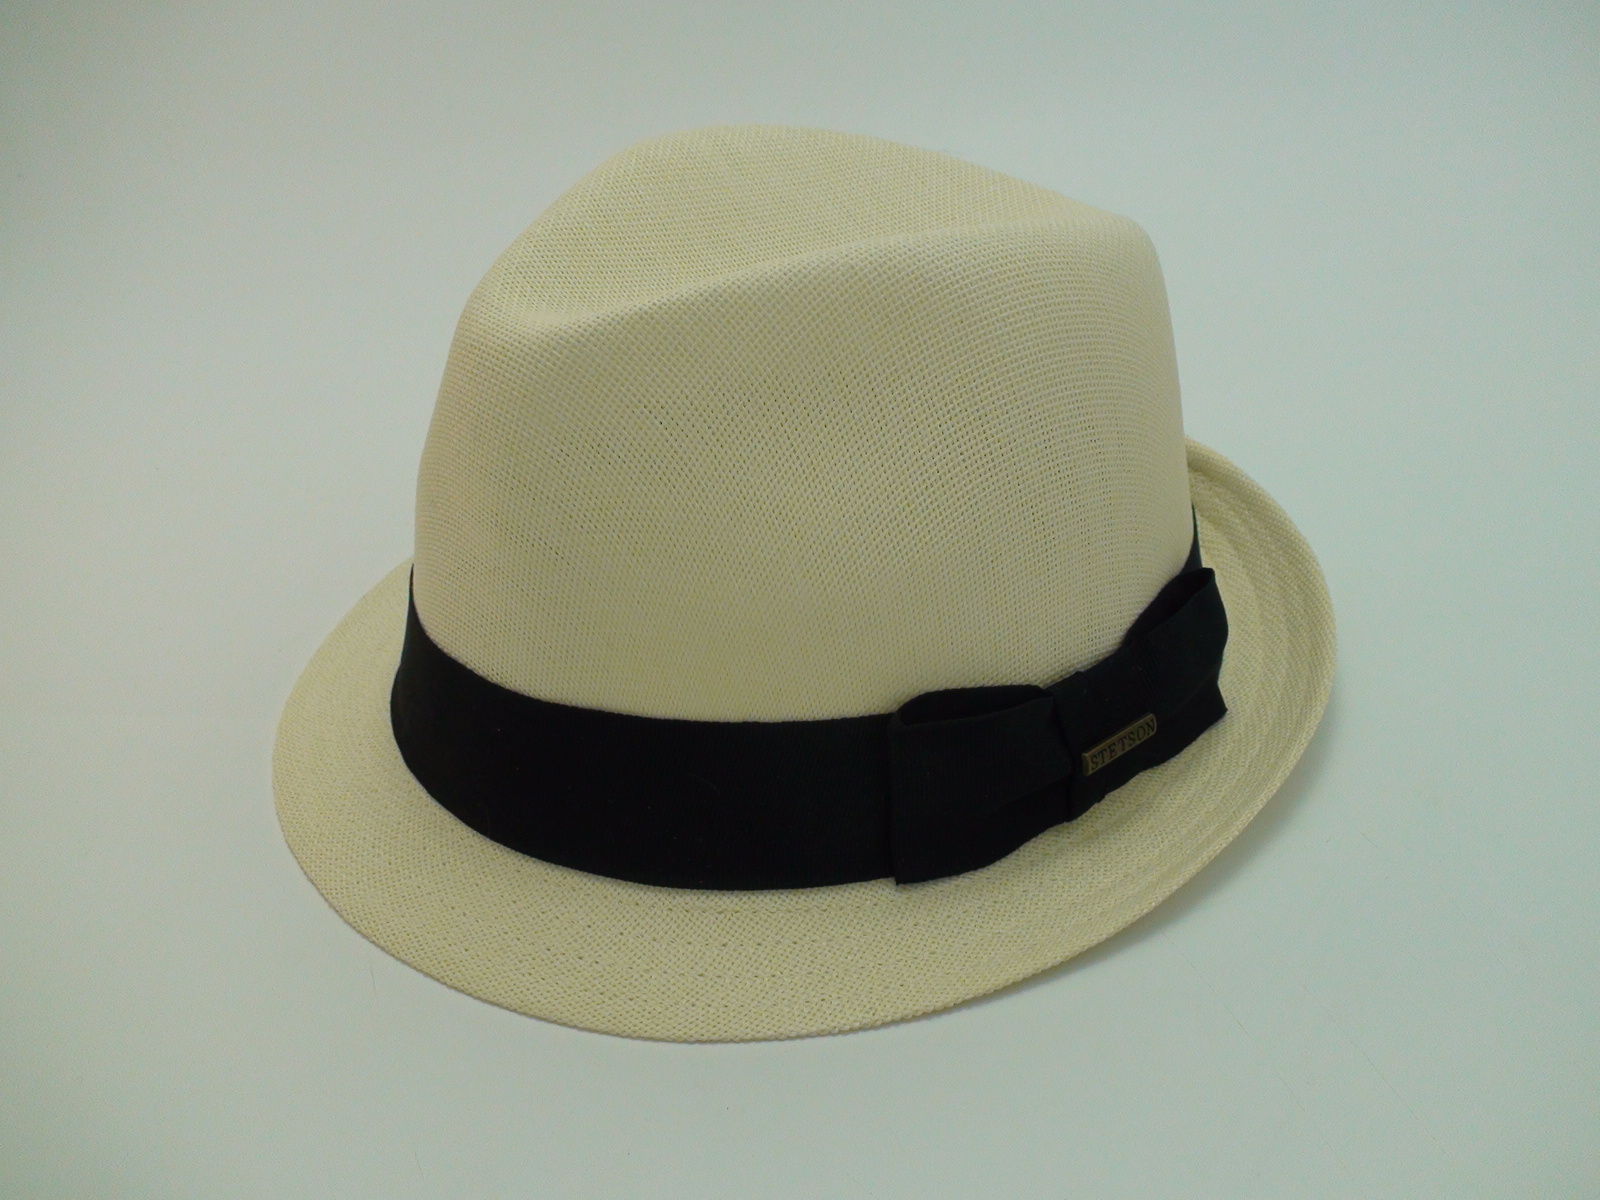 Stetson Vermont Mesh Hat Lightweight Polyester Fedora Tilby 7c3b4c8cad1